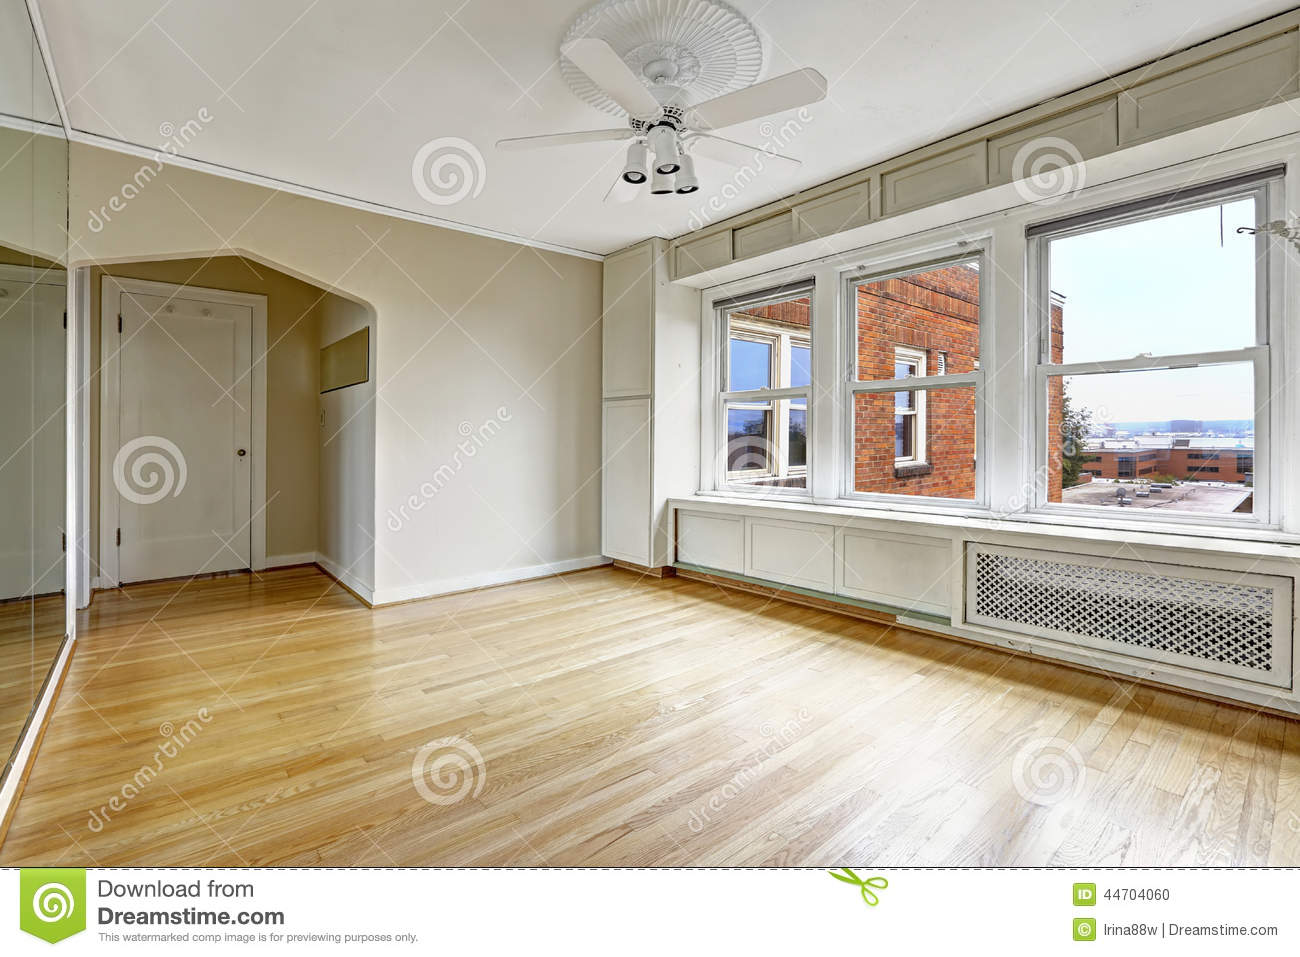 Empty Apartment Interior In Old Residential Building In Downtown Stock Photo